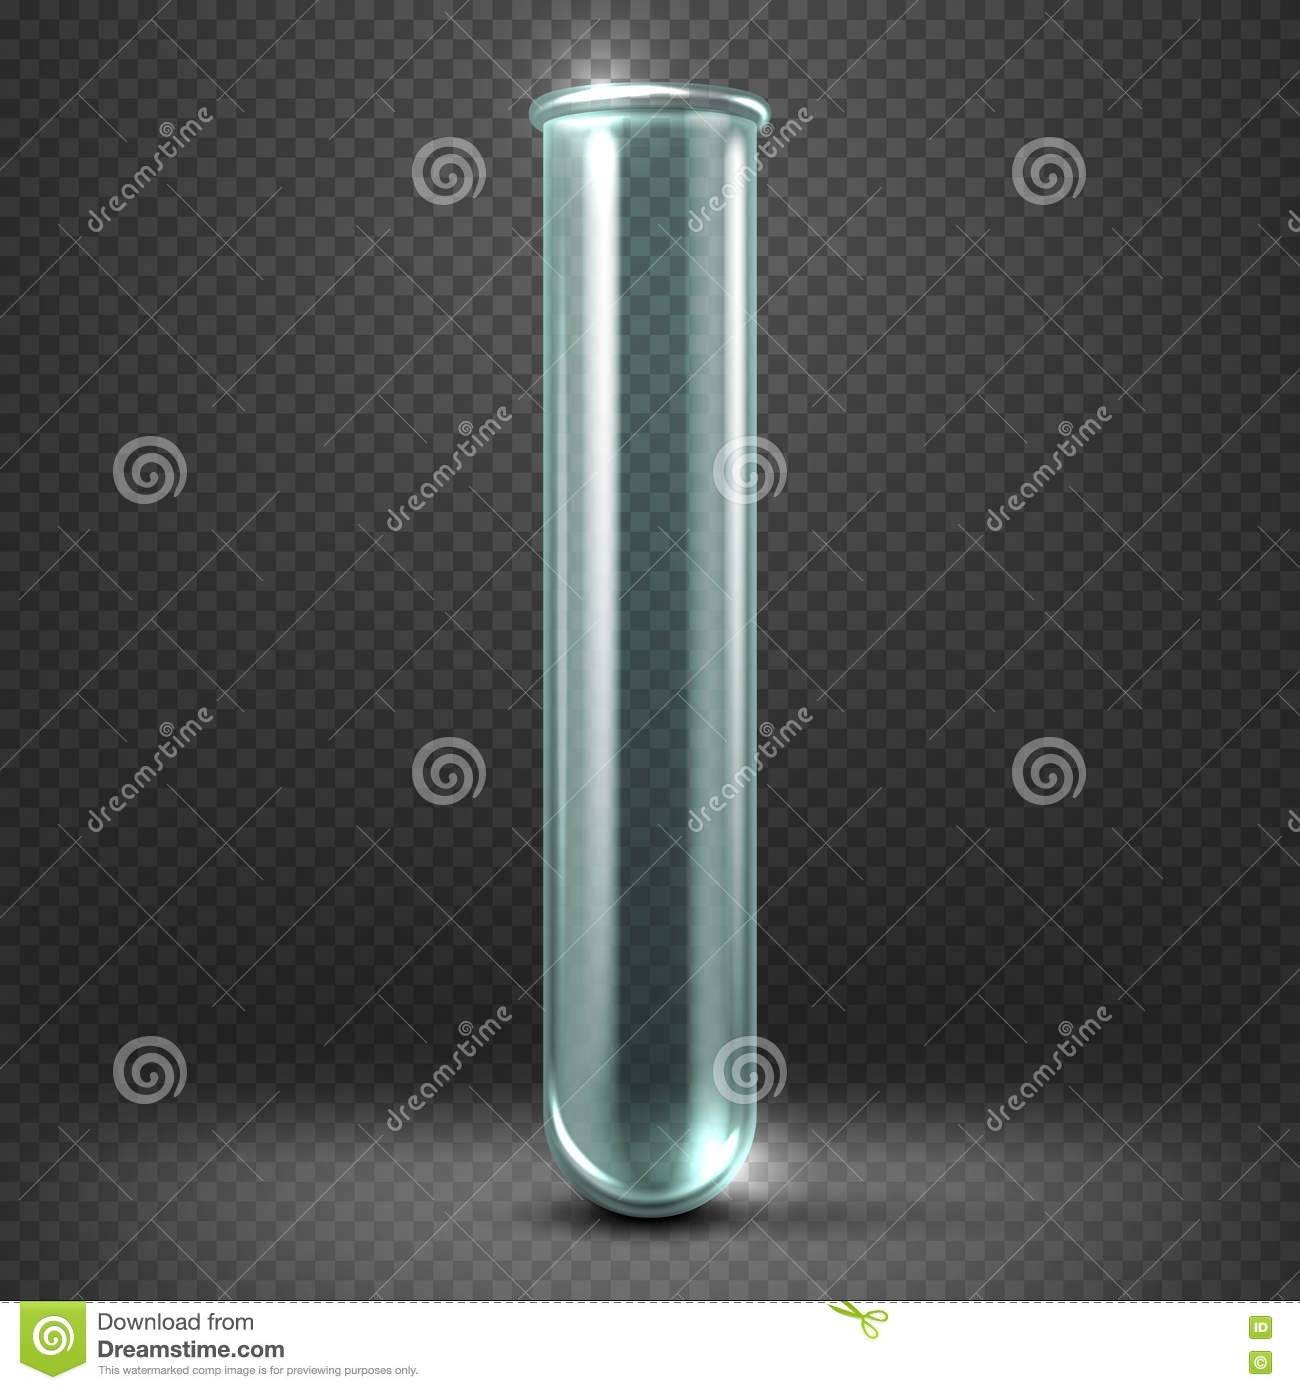 Download Realistic Vector Empty Glass Test Tube Template Isolated On Transparent Checkered Background. Stock Vector - Illustration of analysis, background: 78657532